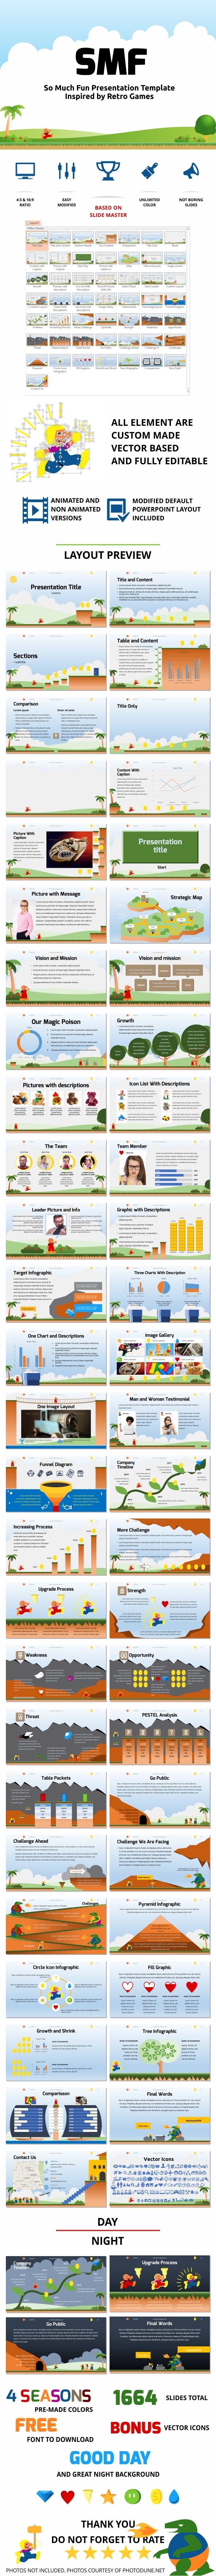 SMF Powerpoint Presentation Template - Abstract PowerPoint Templates